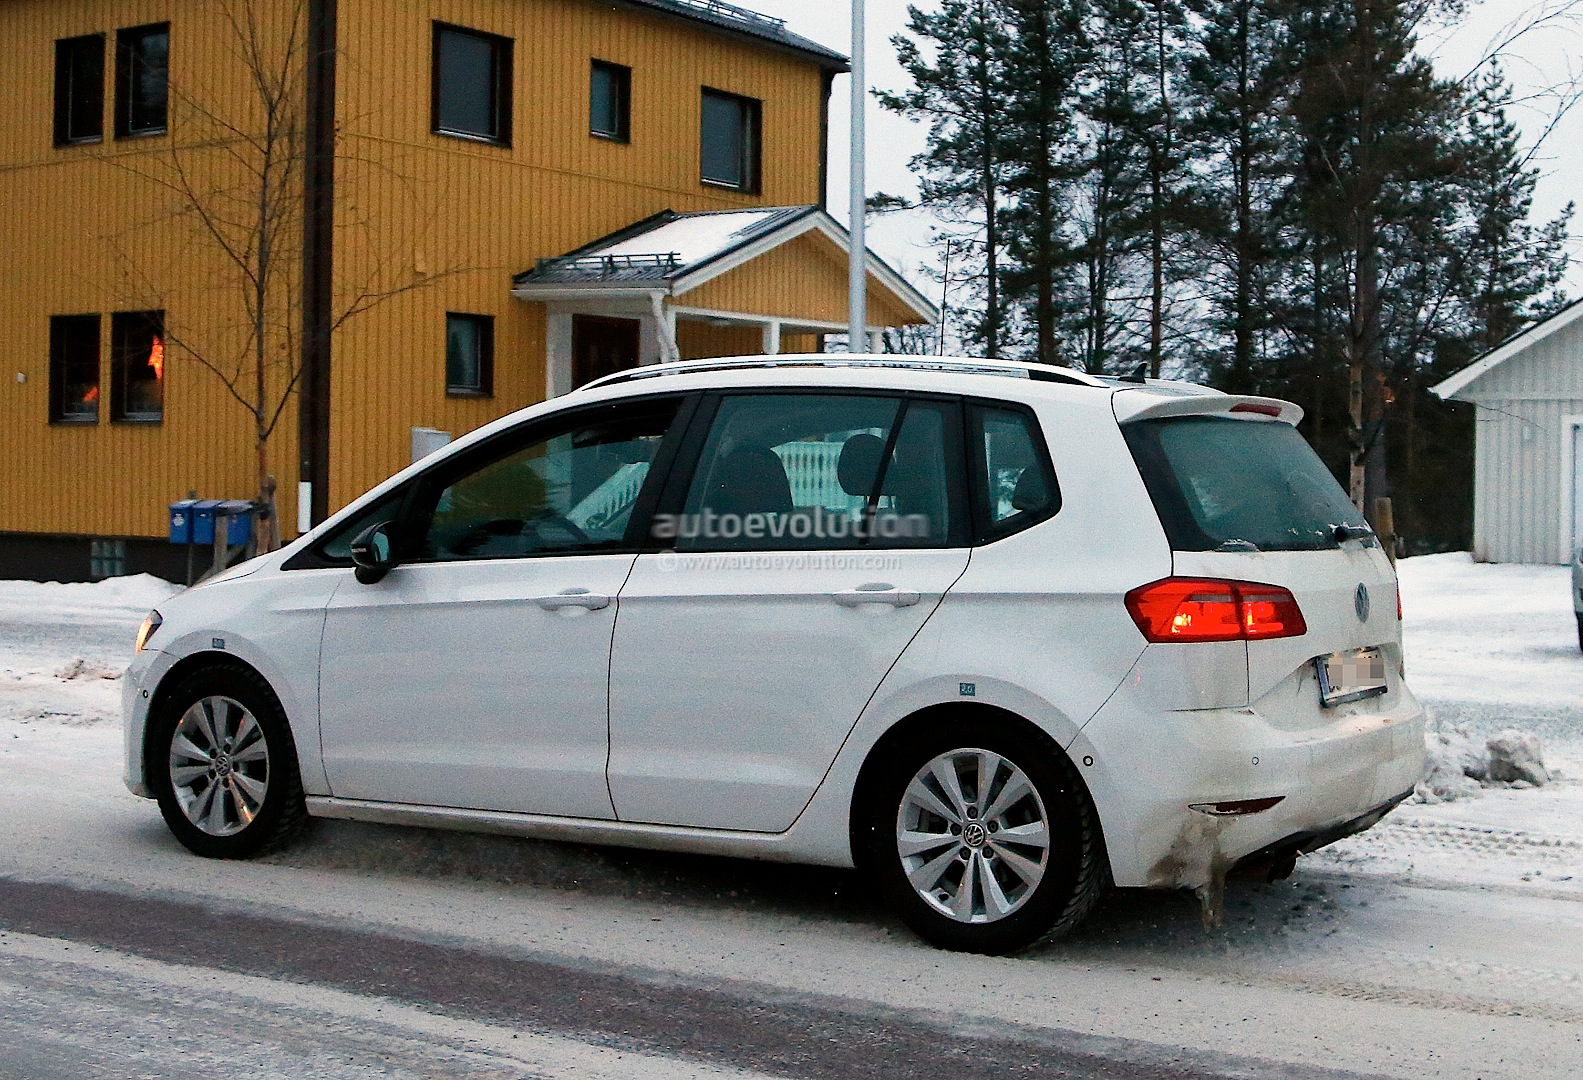 Spyshots: Golf Sportsvan Readies for 2014 Launch - autoevolution